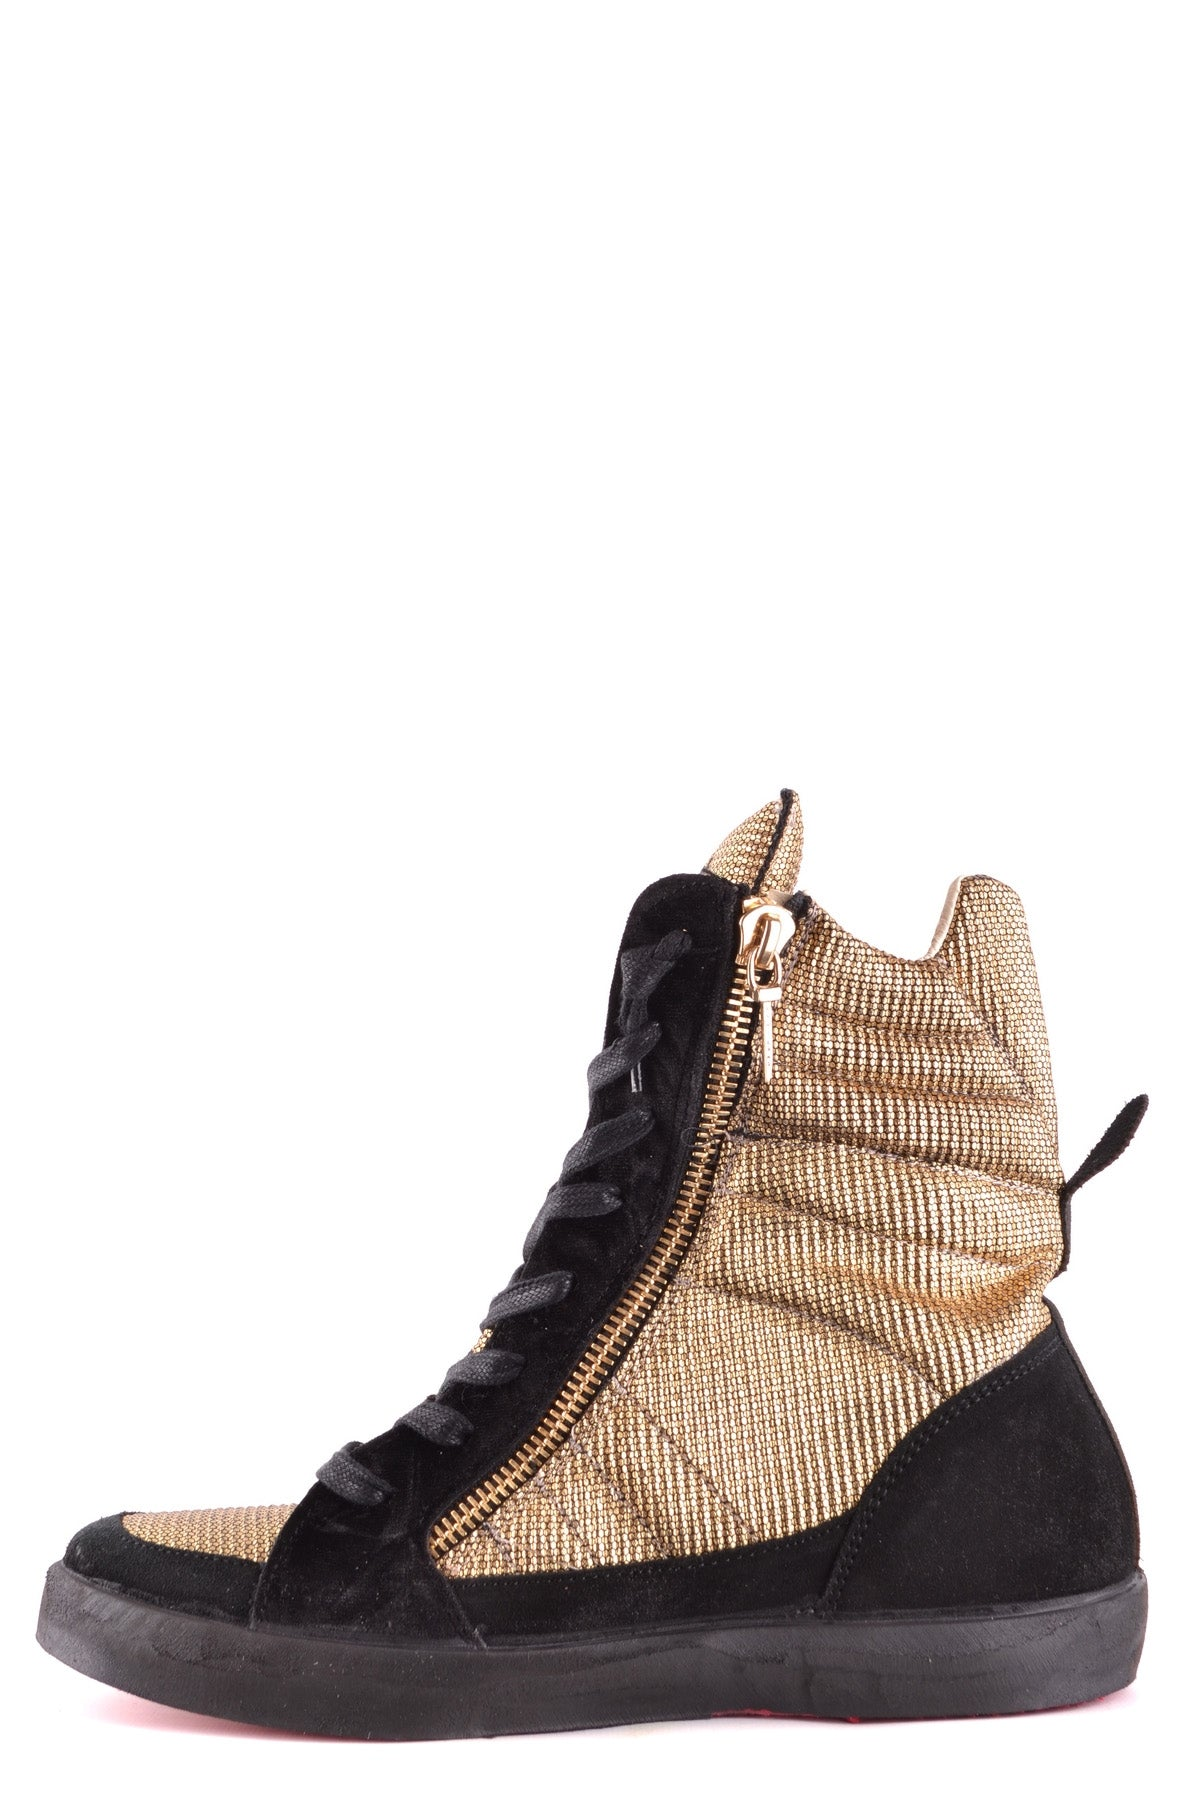 Shoes Ishikawa-Sports & Entertainment - Sneakers-Product Details Year: 2017Composition: Chamois 40%, Leather 60%Size: EuMade In: ItalySeason: Spring / SummerType Of Accessory: ShoesMain Color: GoldTerms: New With LabelGender: Woman-Keyomi-Sook